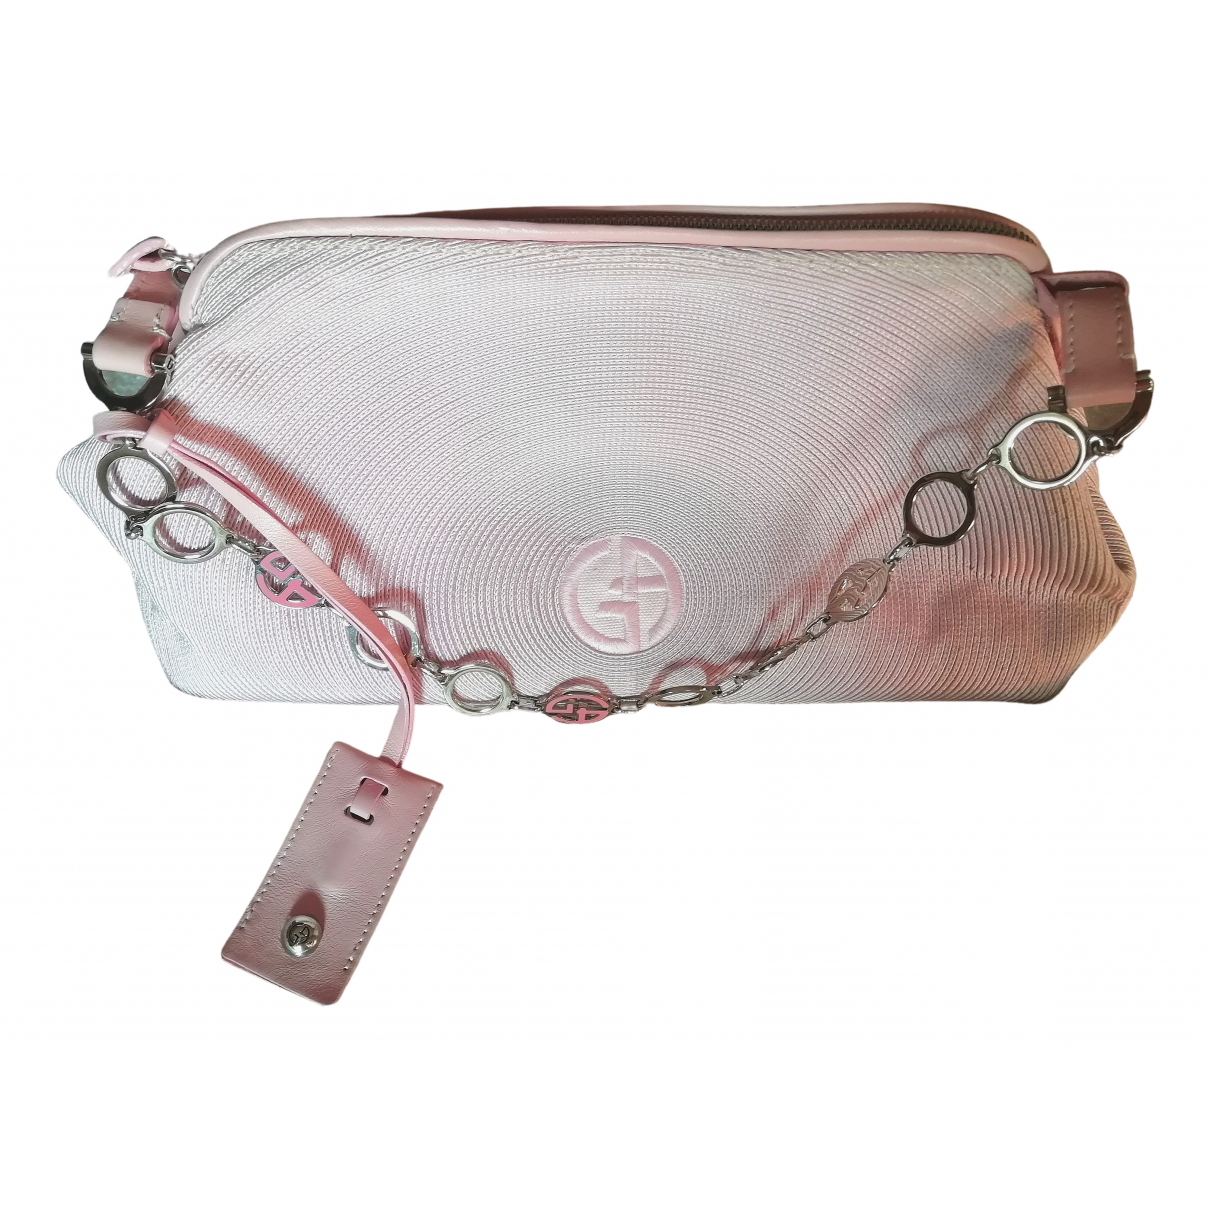 Giorgio Armani \N Pink Cotton handbag for Women \N